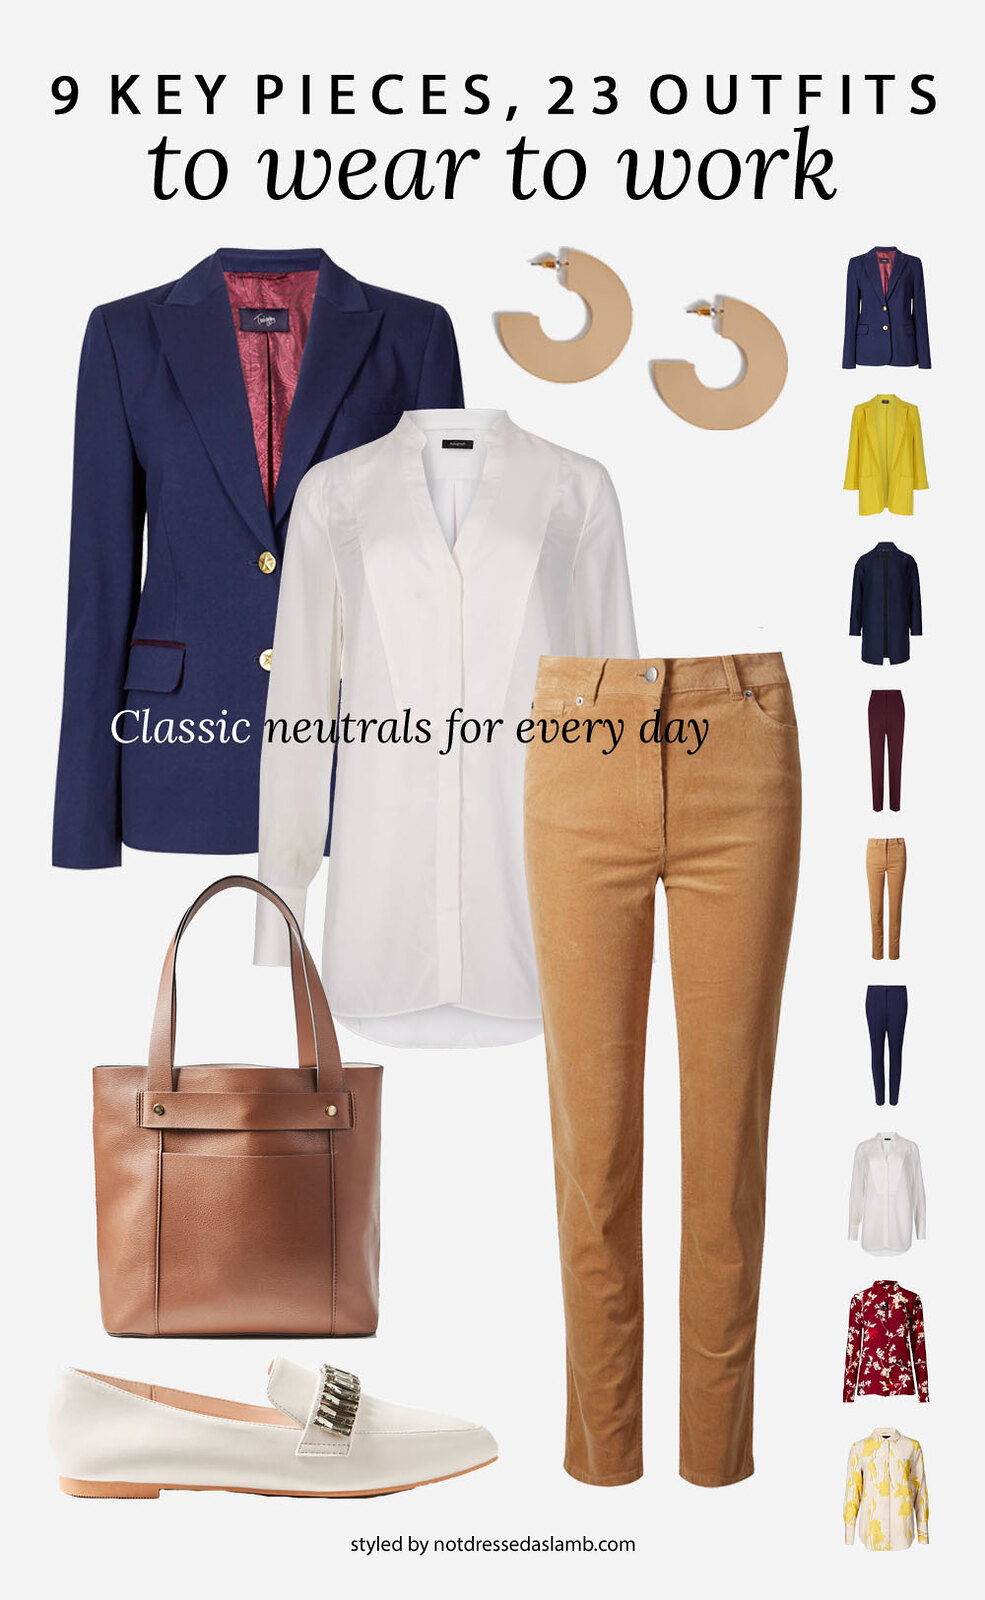 23 Workwear Outfits From 9 Key Pieces Perfect for a Creative Office: Neutrals for Every Day | Not Dressed As Lamb, over 40 style